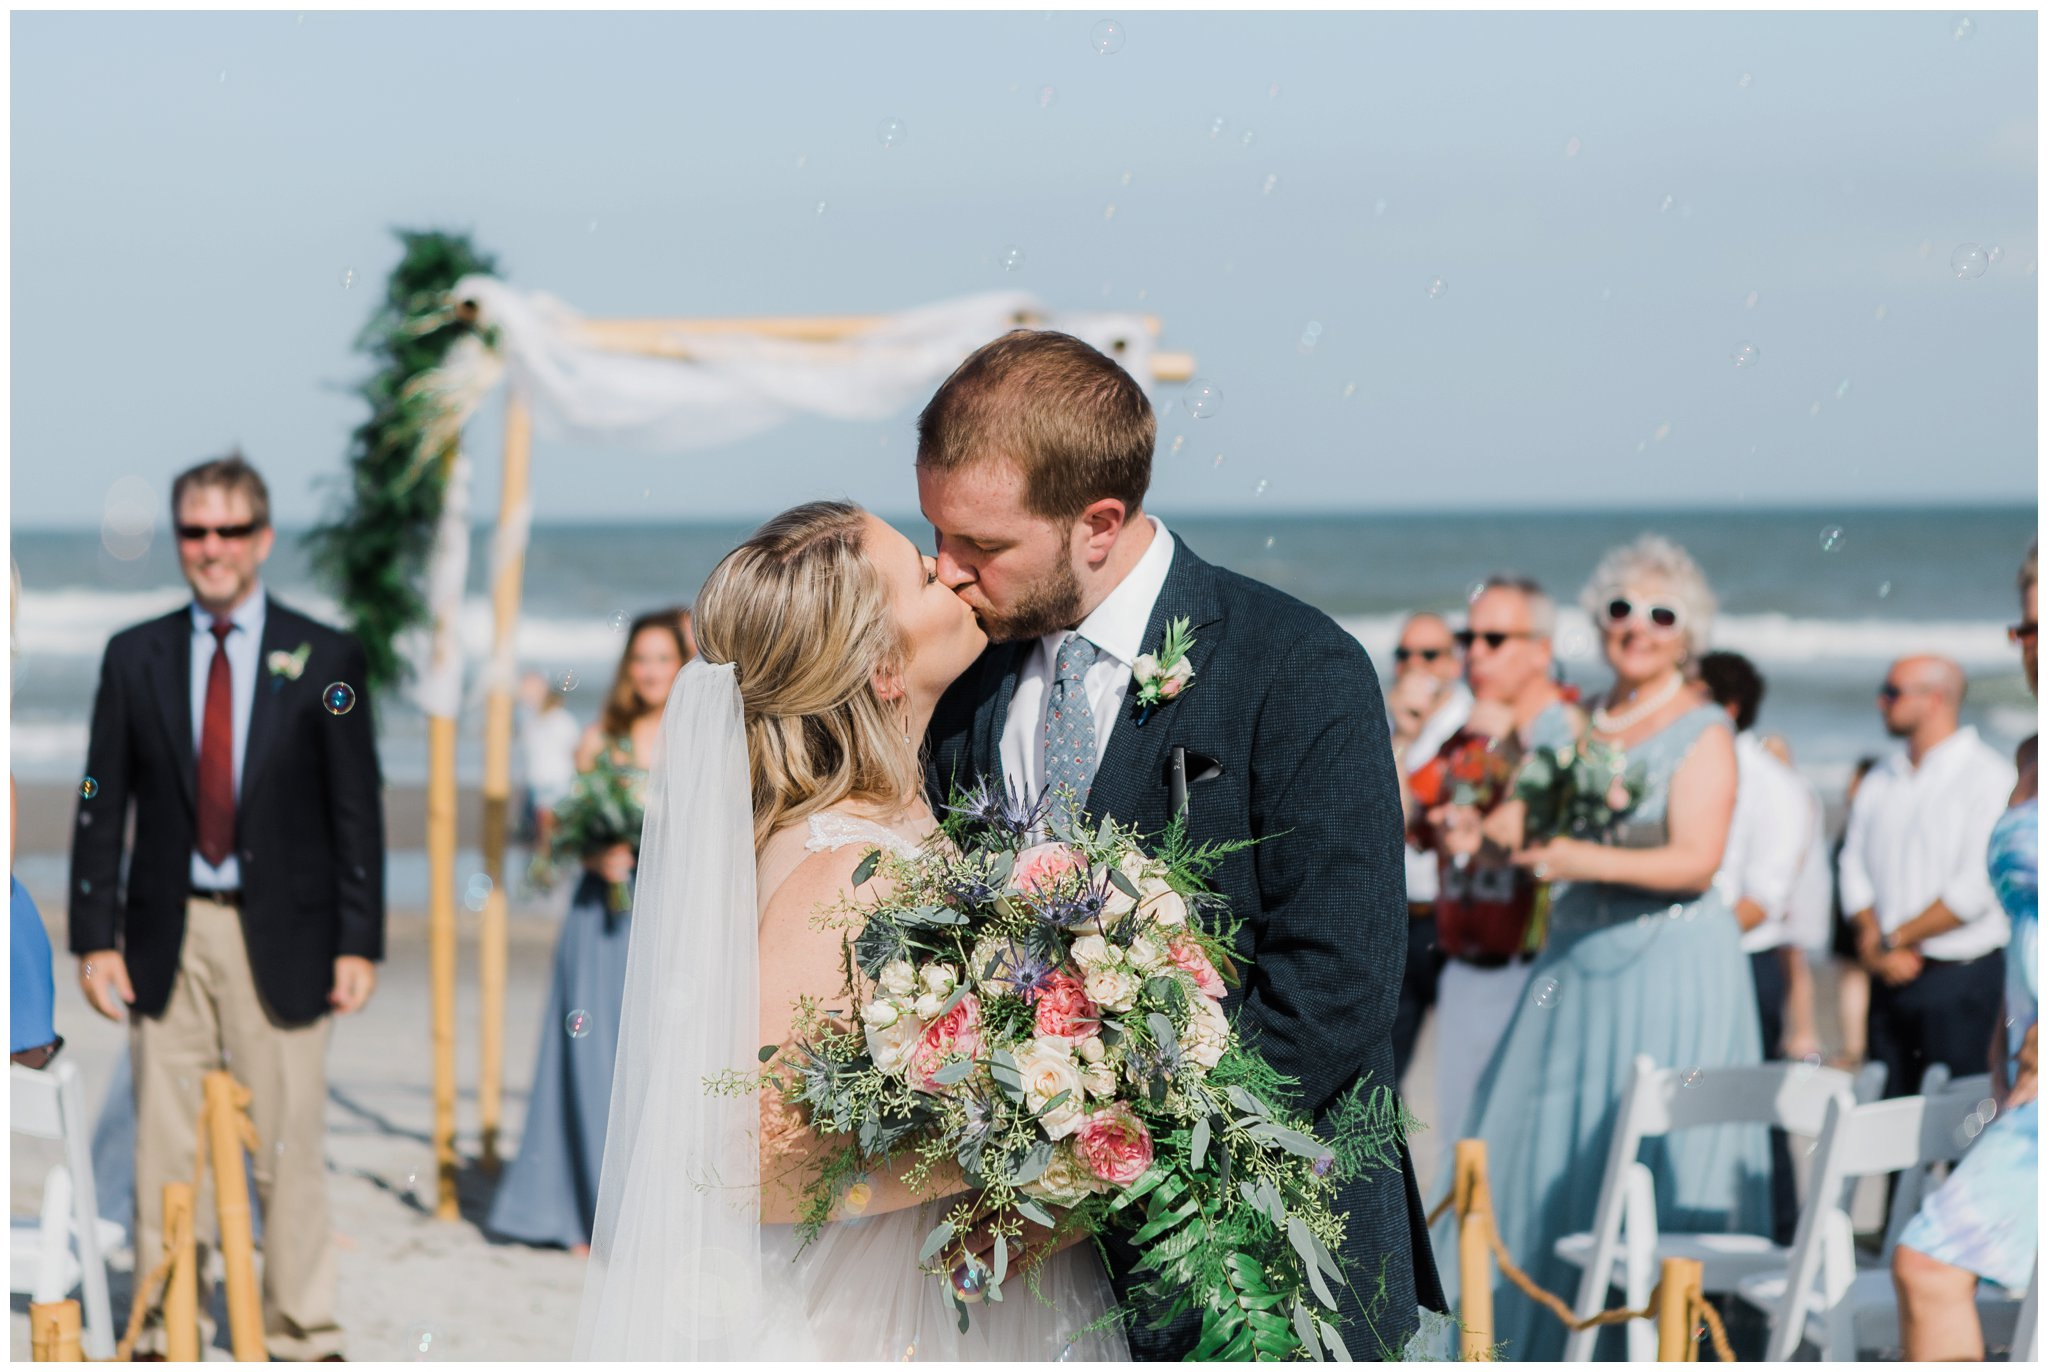 kaley and kevin-coco beach pier wedding-kimberly smith photography_0038.jpg